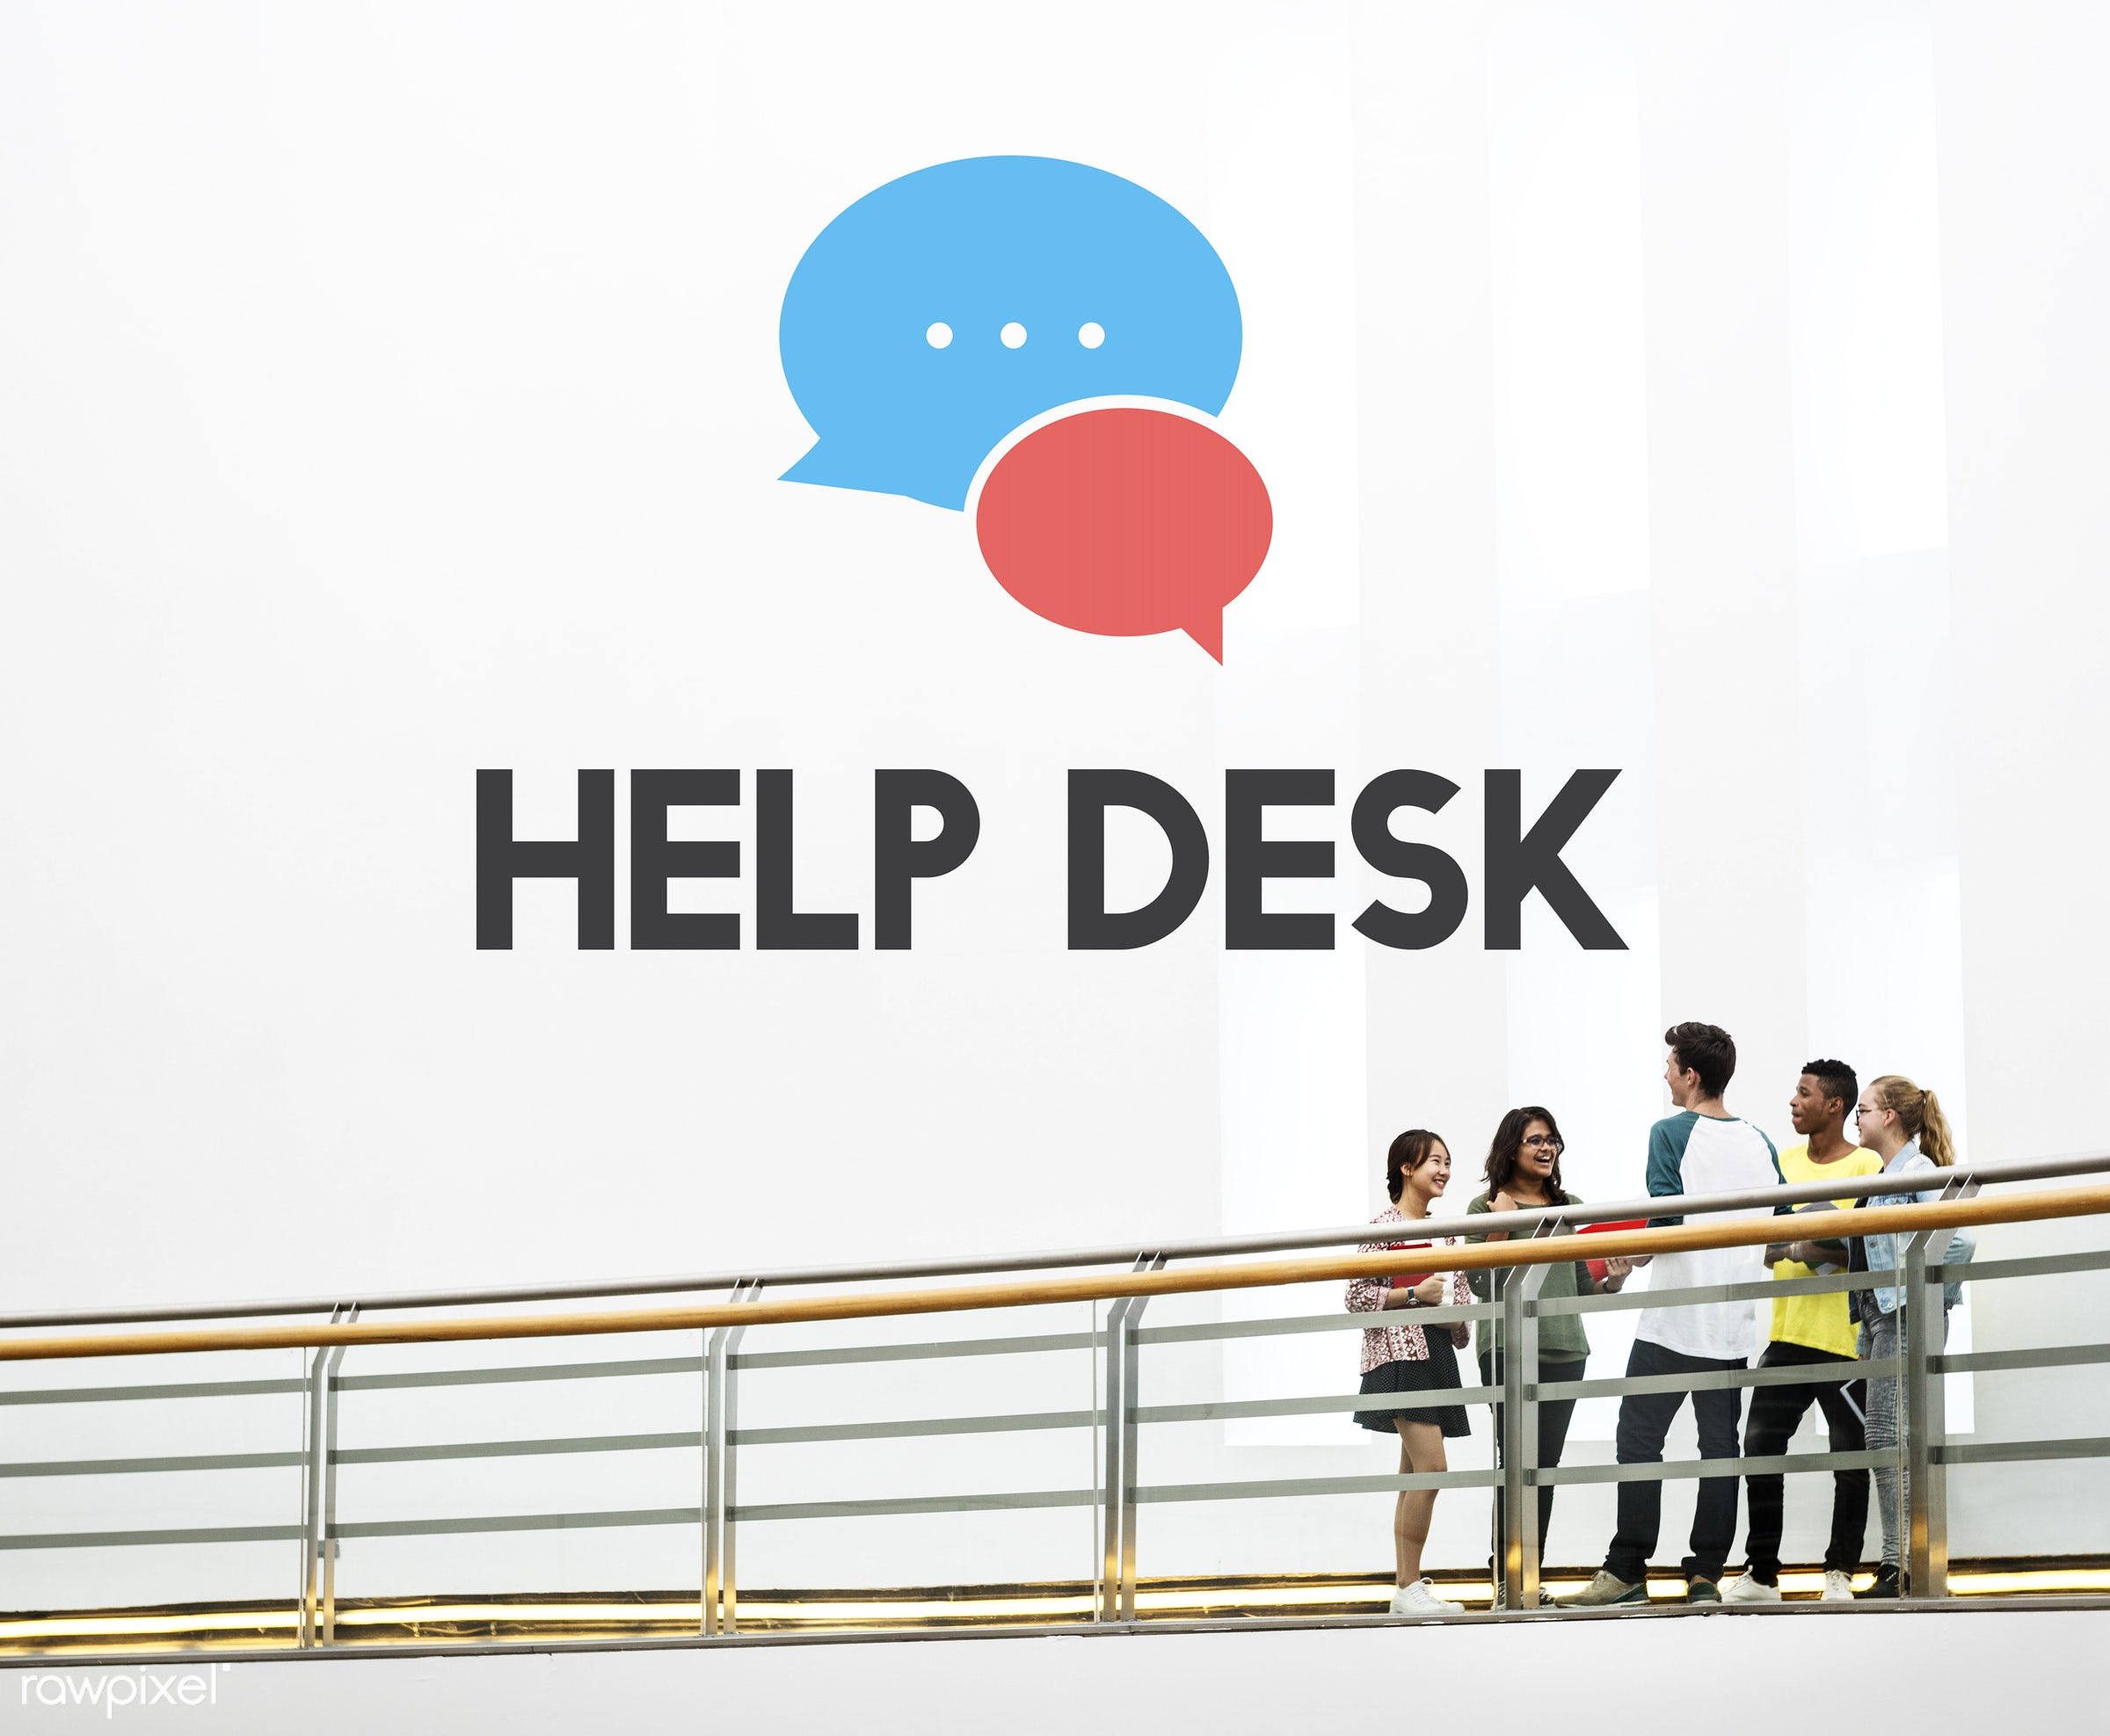 carrying, advice, aid, amenity, assistance, book, books, boy, bridge, call centre, care, communication, customer service,...